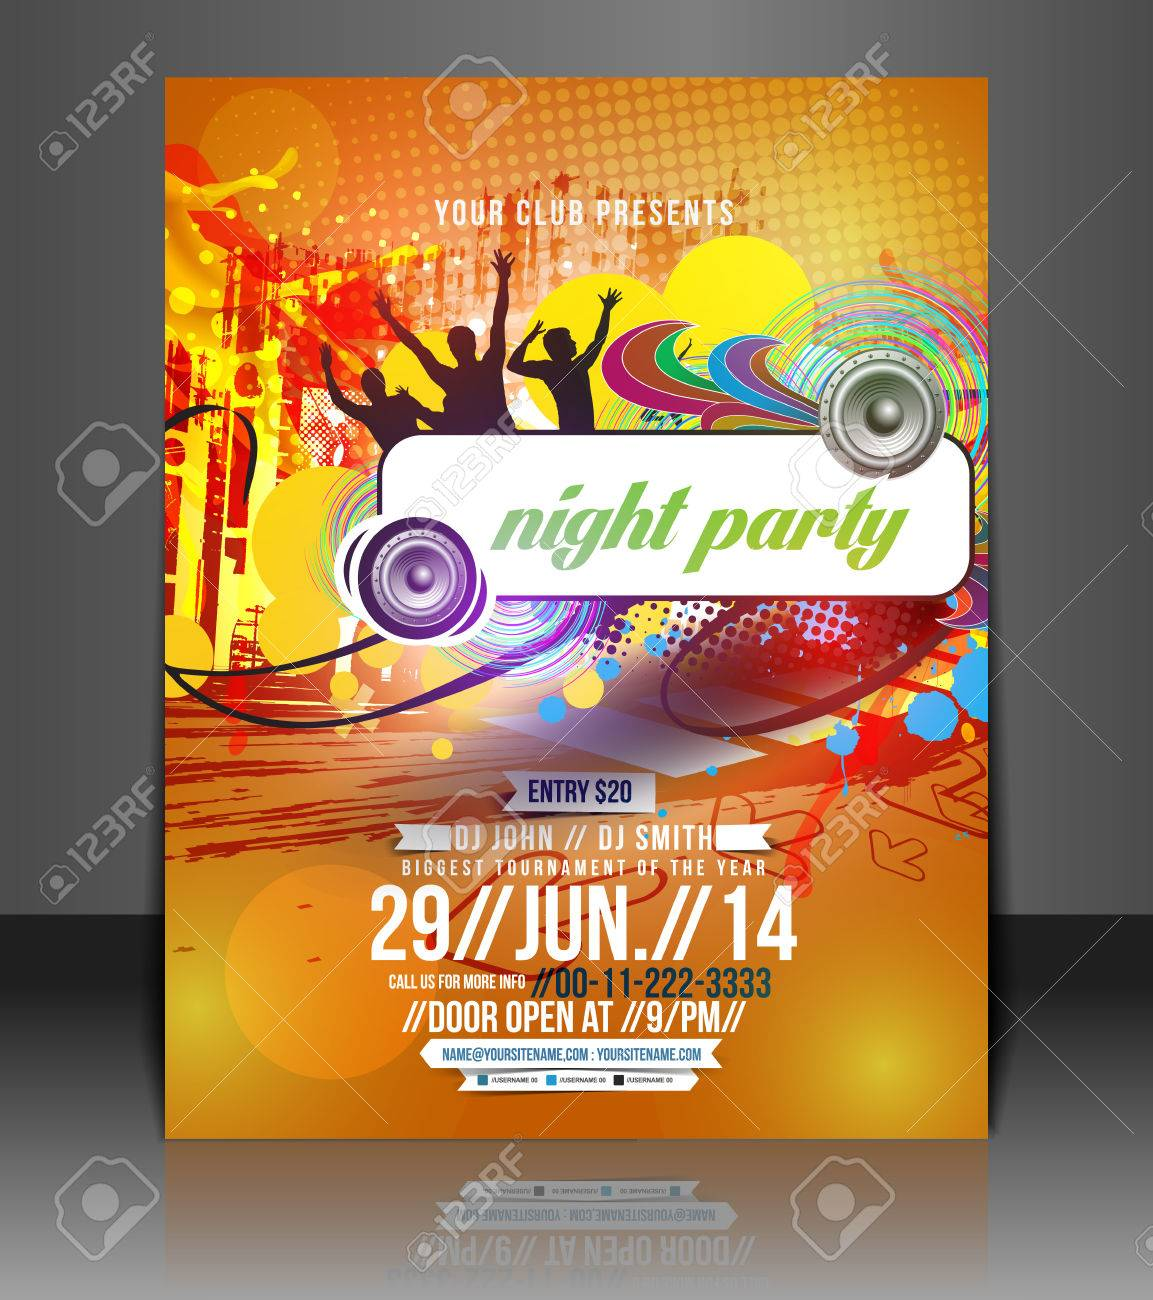 Poster design template free - Music Party Flyer Poster Template Design Stock Vector 26623002